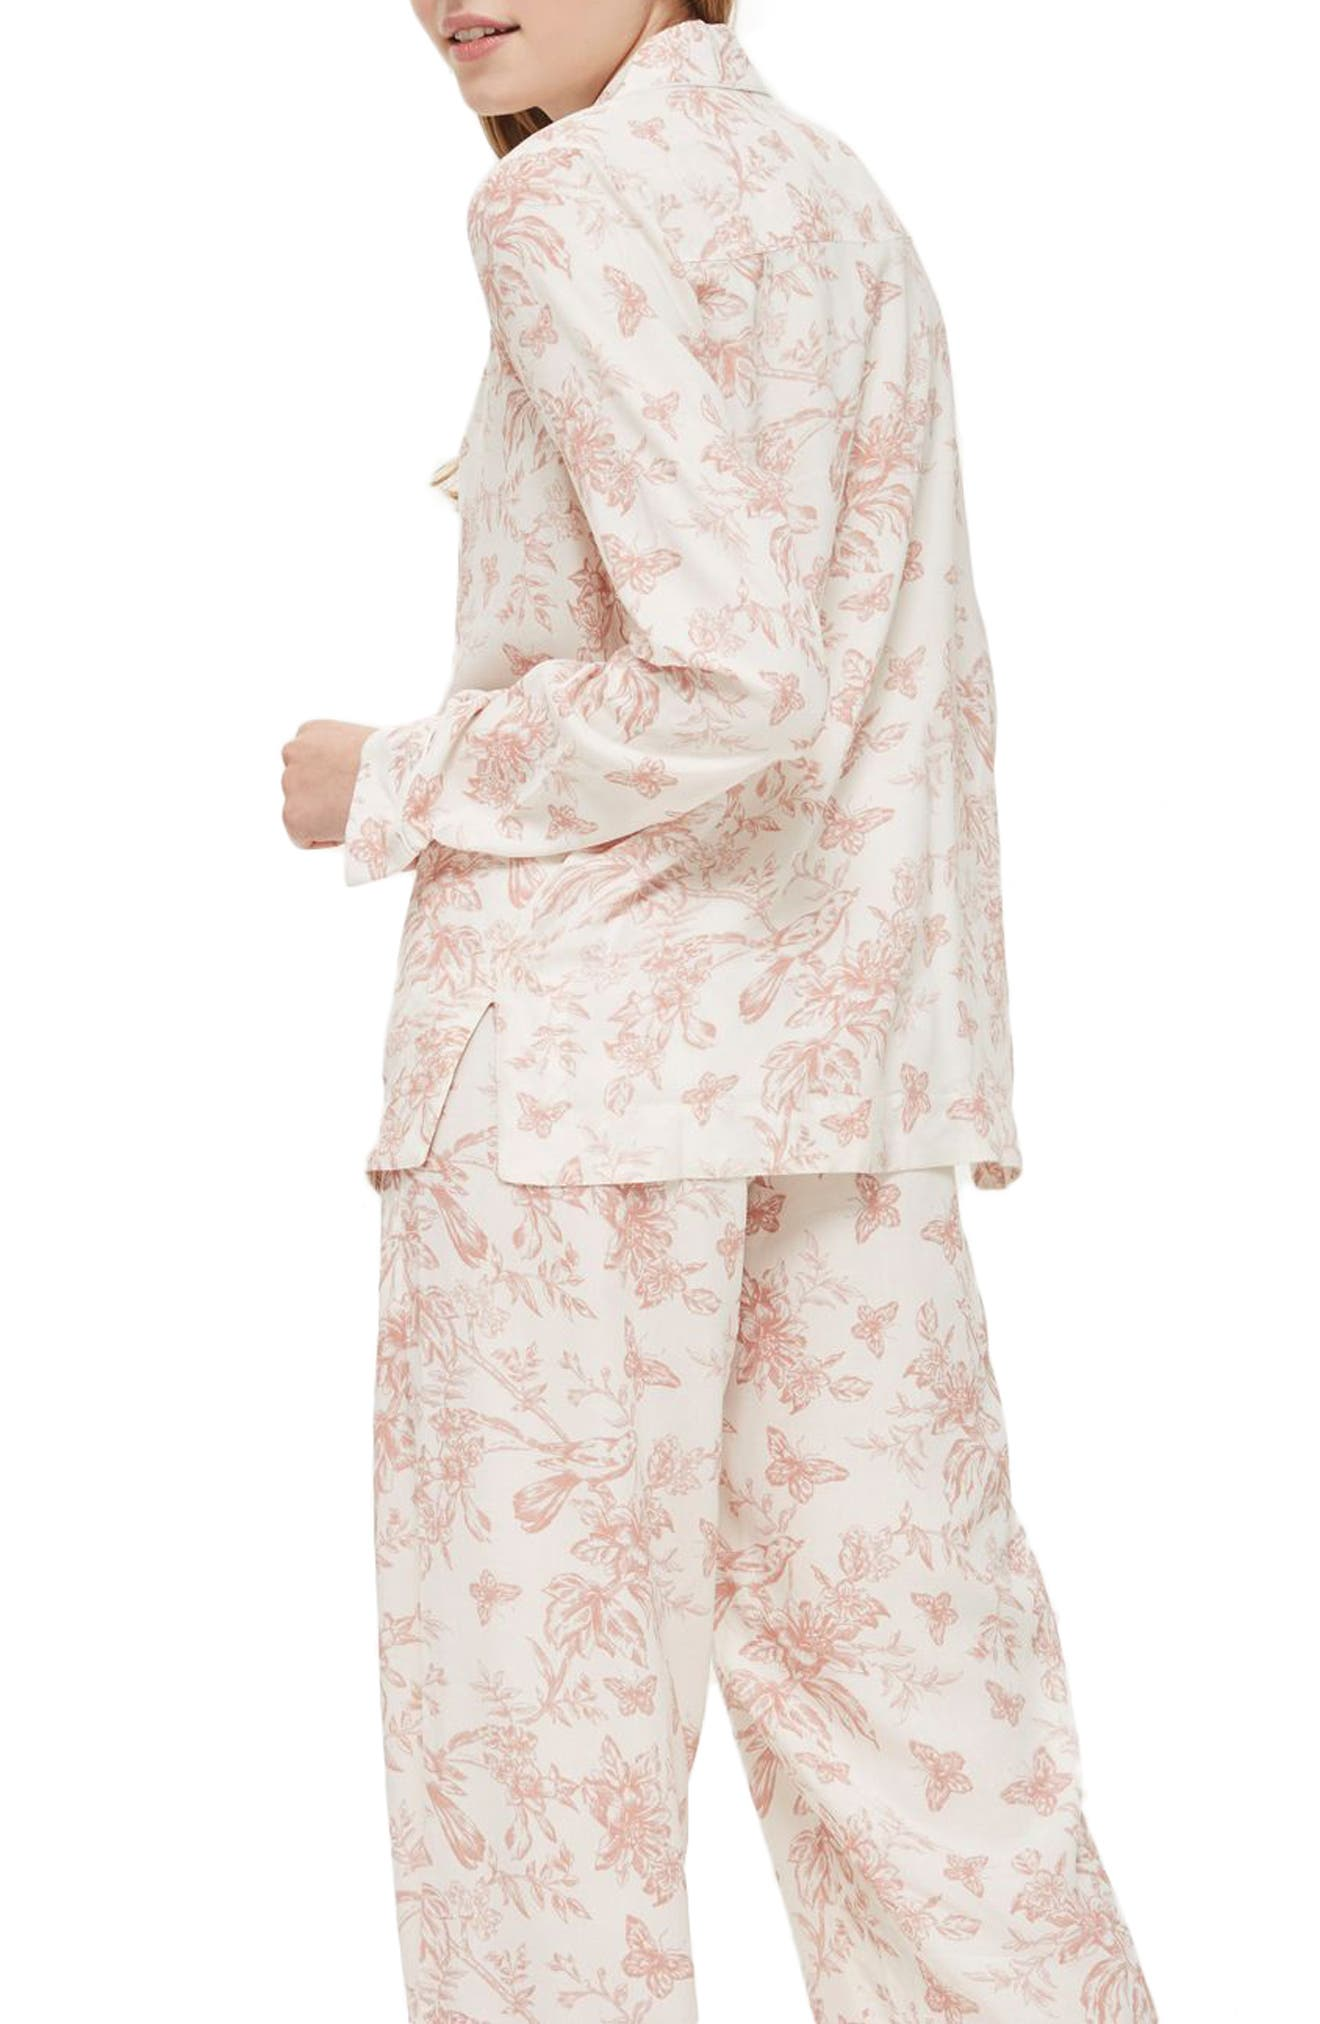 French Floral Pajamas,                             Alternate thumbnail 2, color,